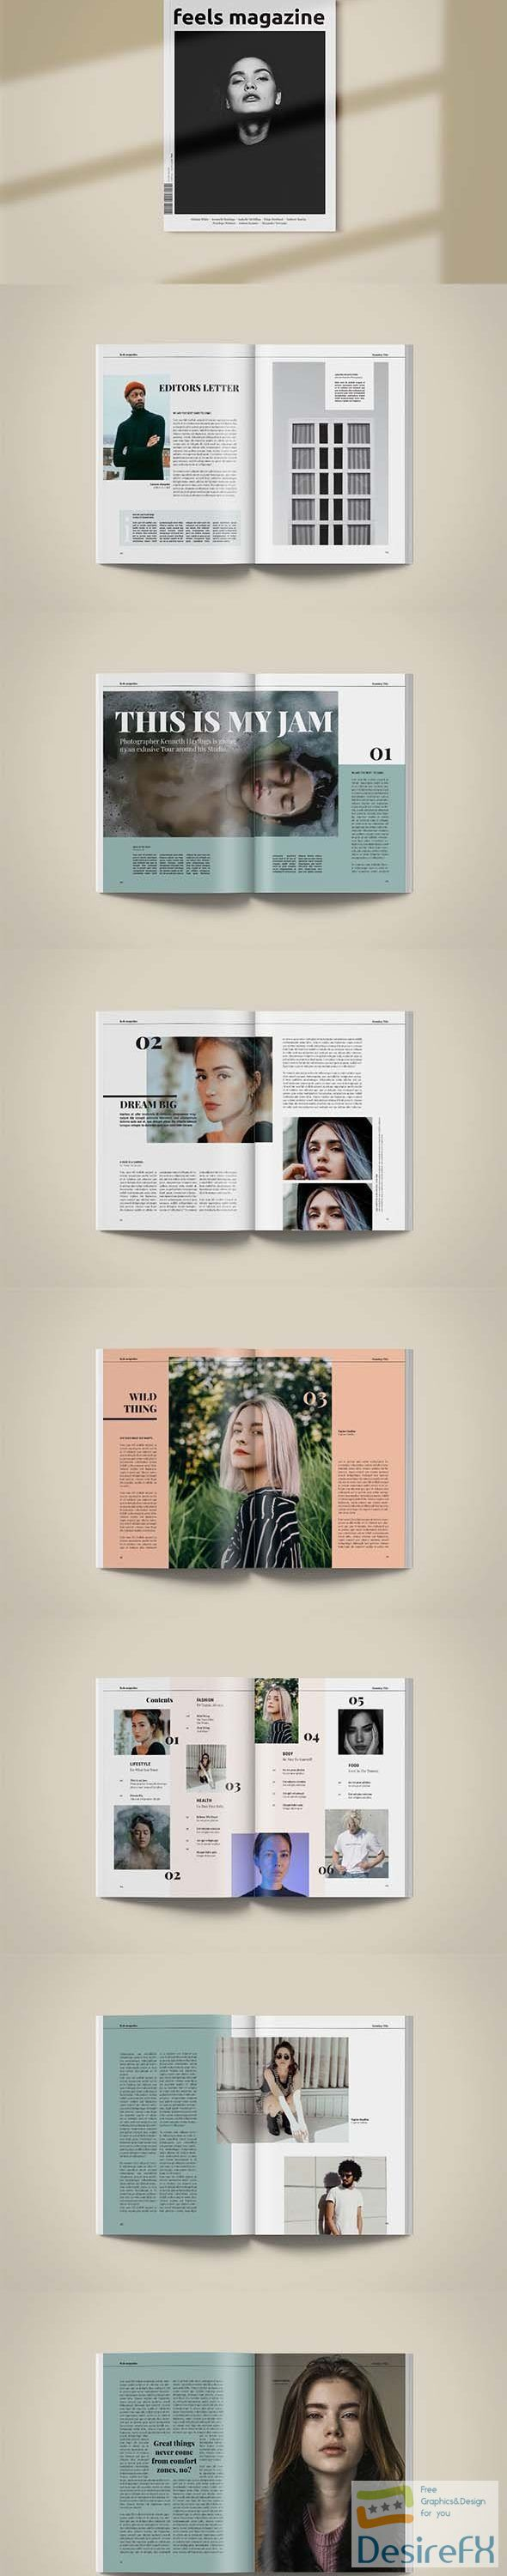 Magazine Template | Feels